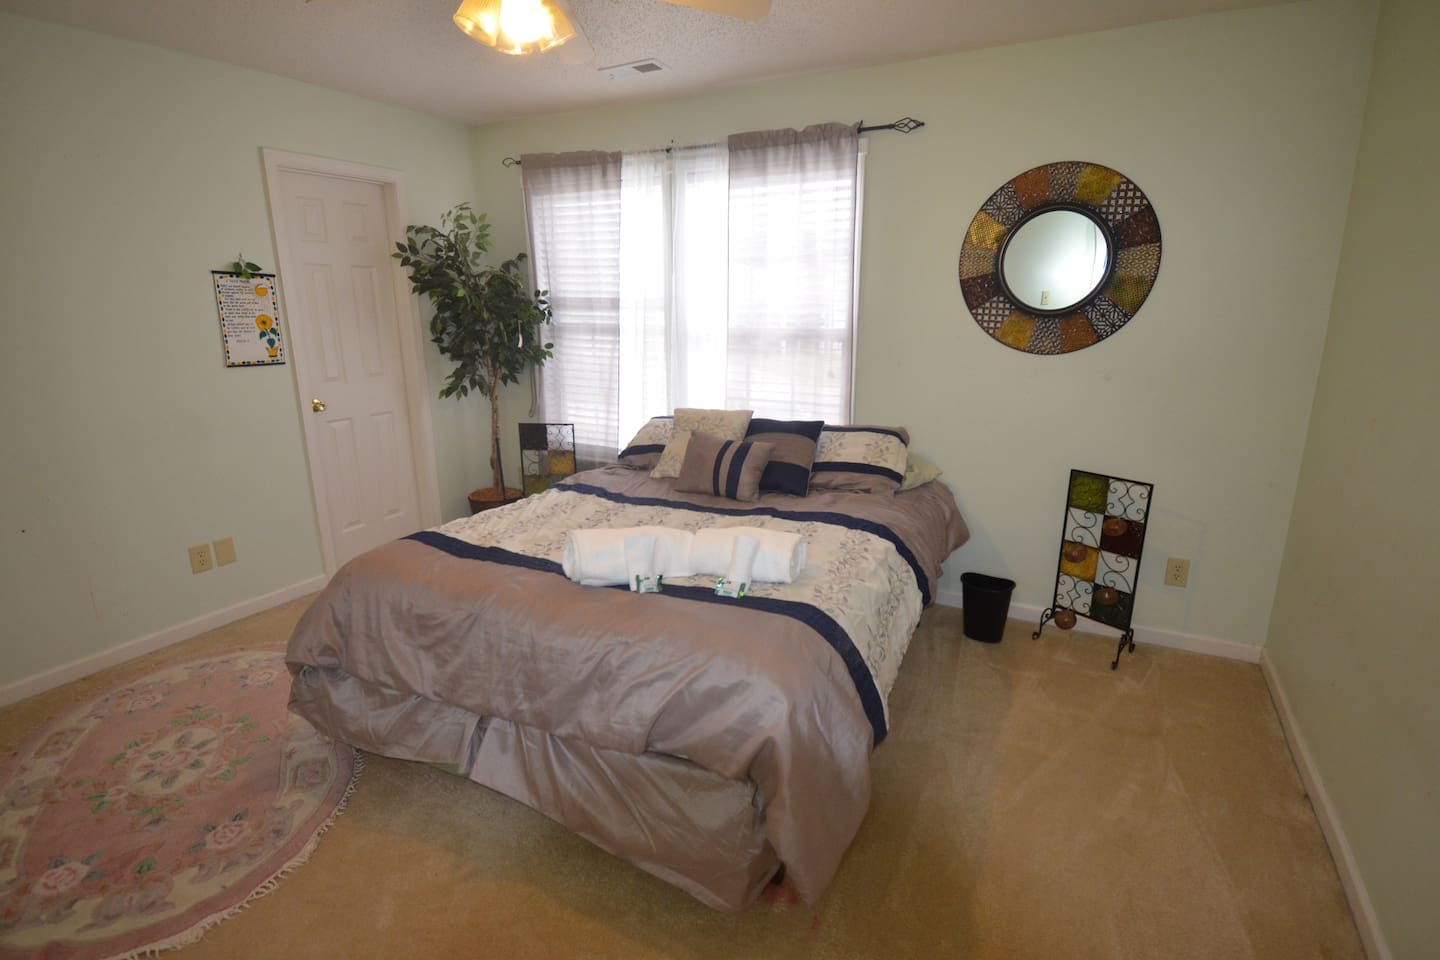 Private room with walk-in closet and perfect natural lighting. Did somebody say good sleep?